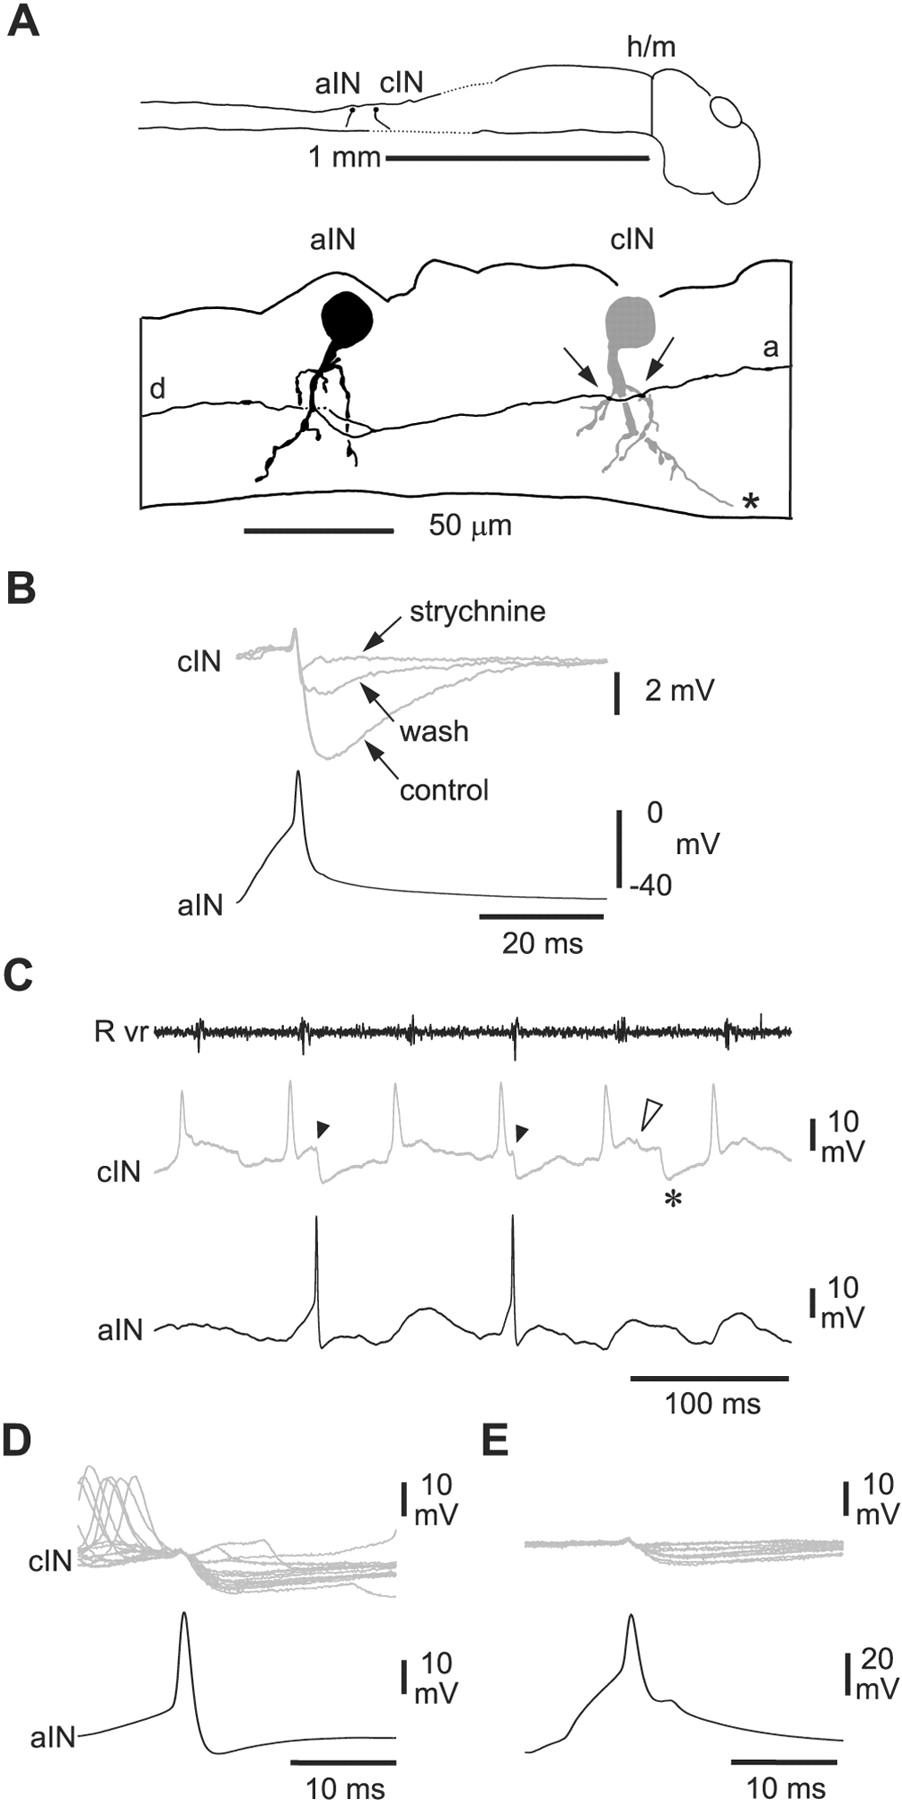 primitive roles for inhibitory interneurons in developing frog Spinal Cord Tracts Diagram download figure